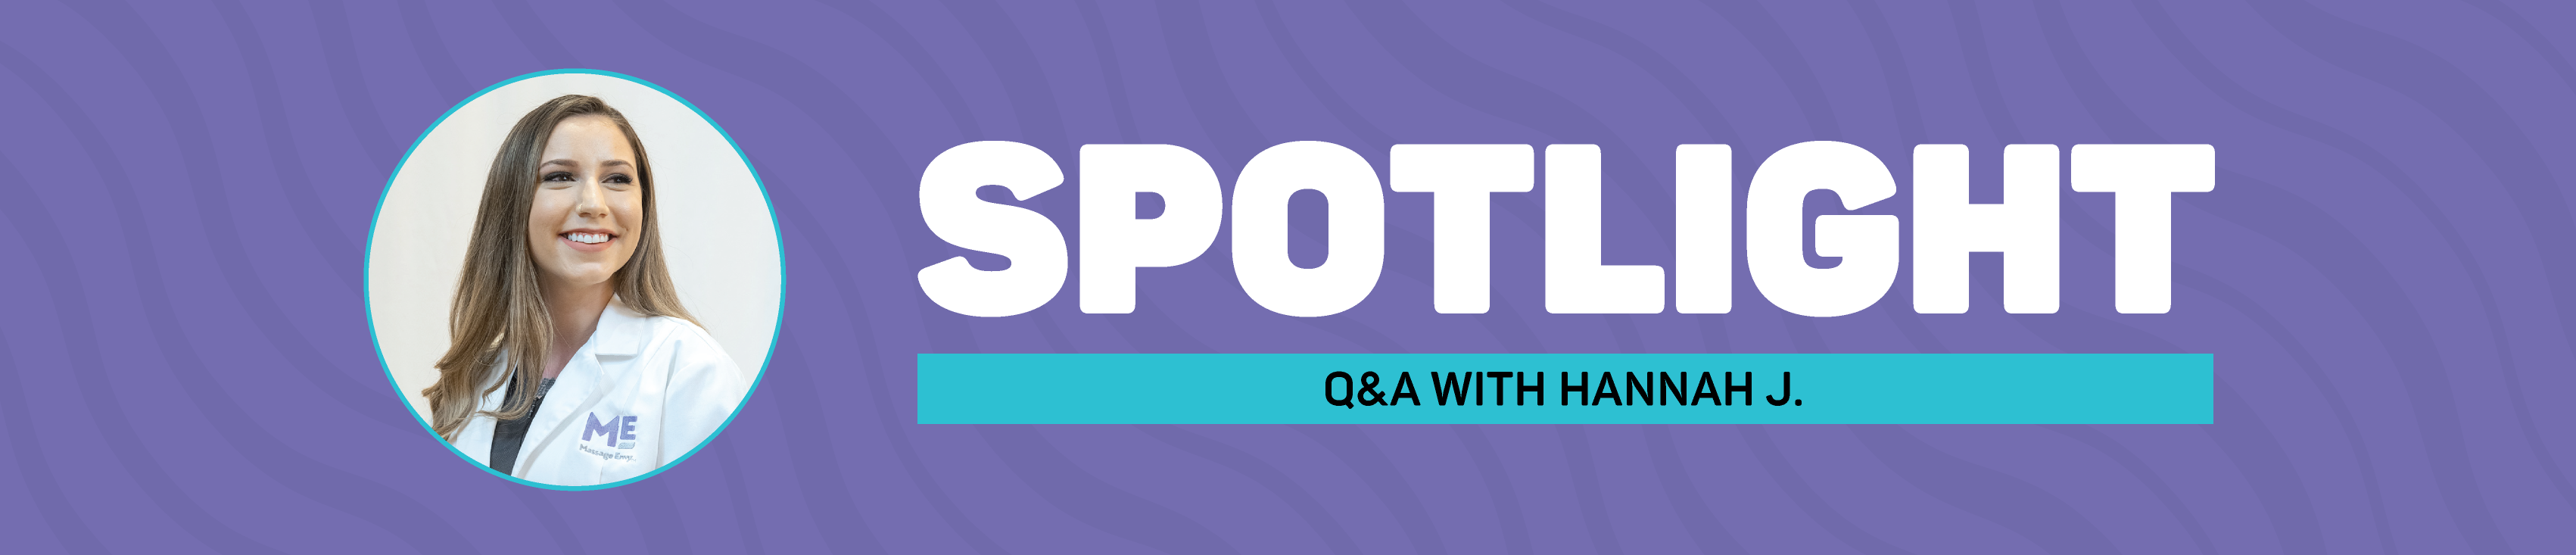 Spotlight Q&A with Hannah J.